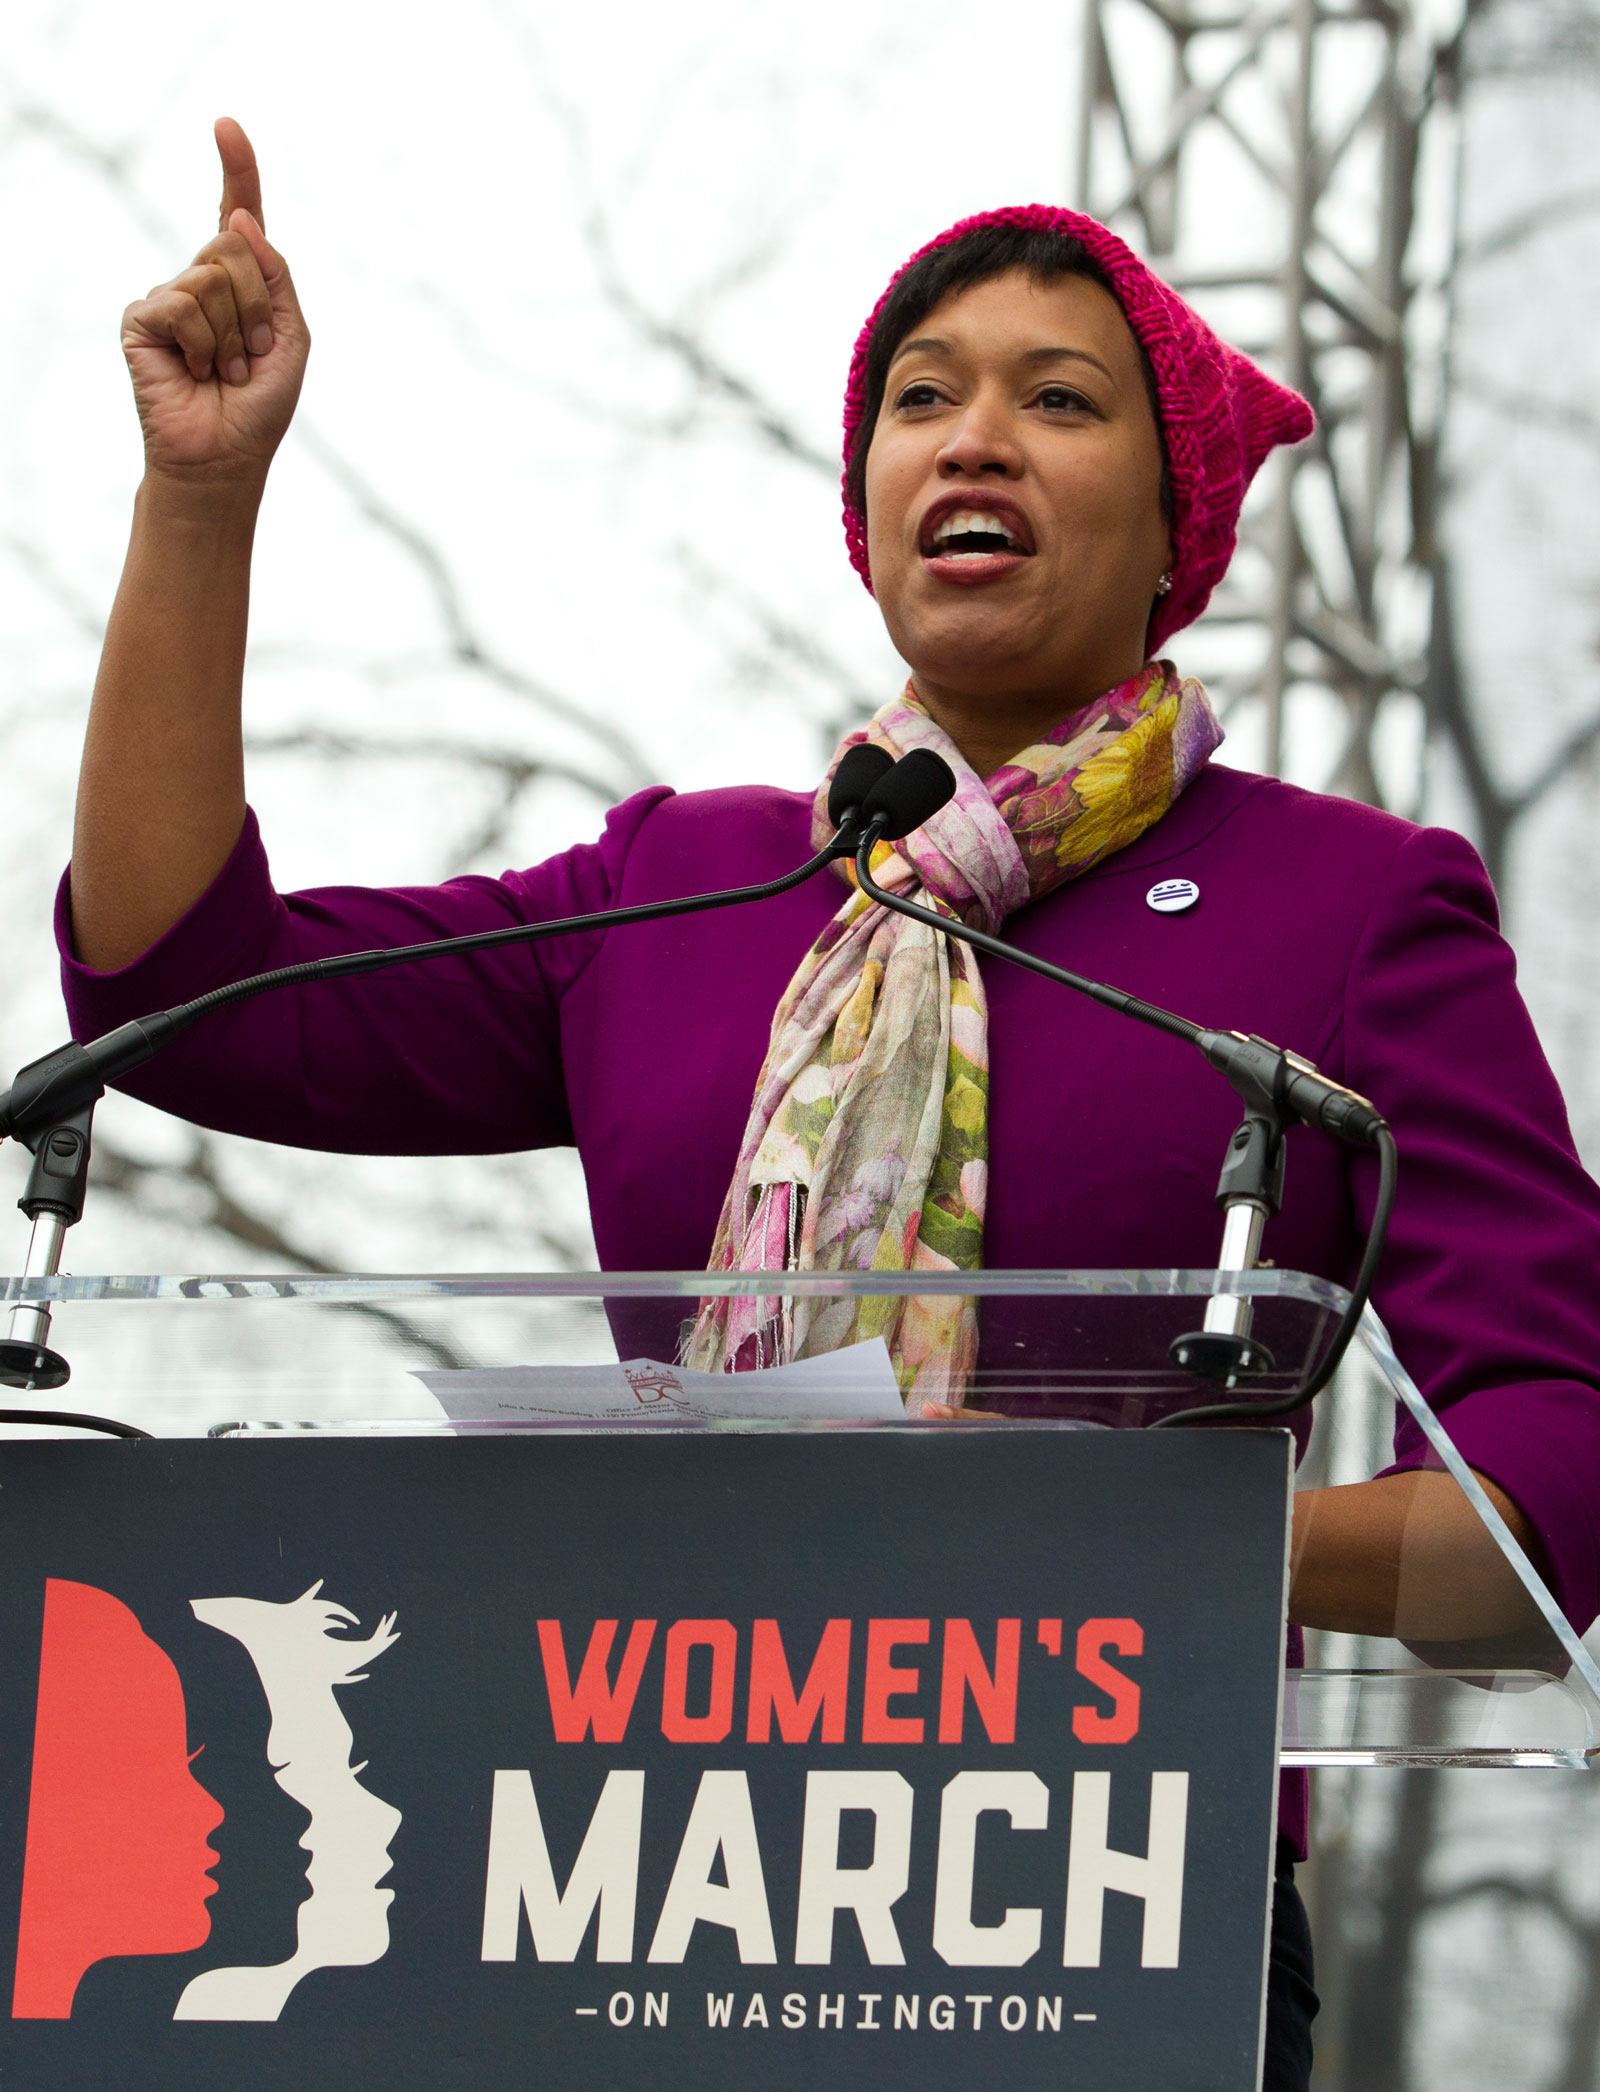 Mayor Muriel Bowser at the Women's March, Washington, D.C., Saturday, January 21, 2017